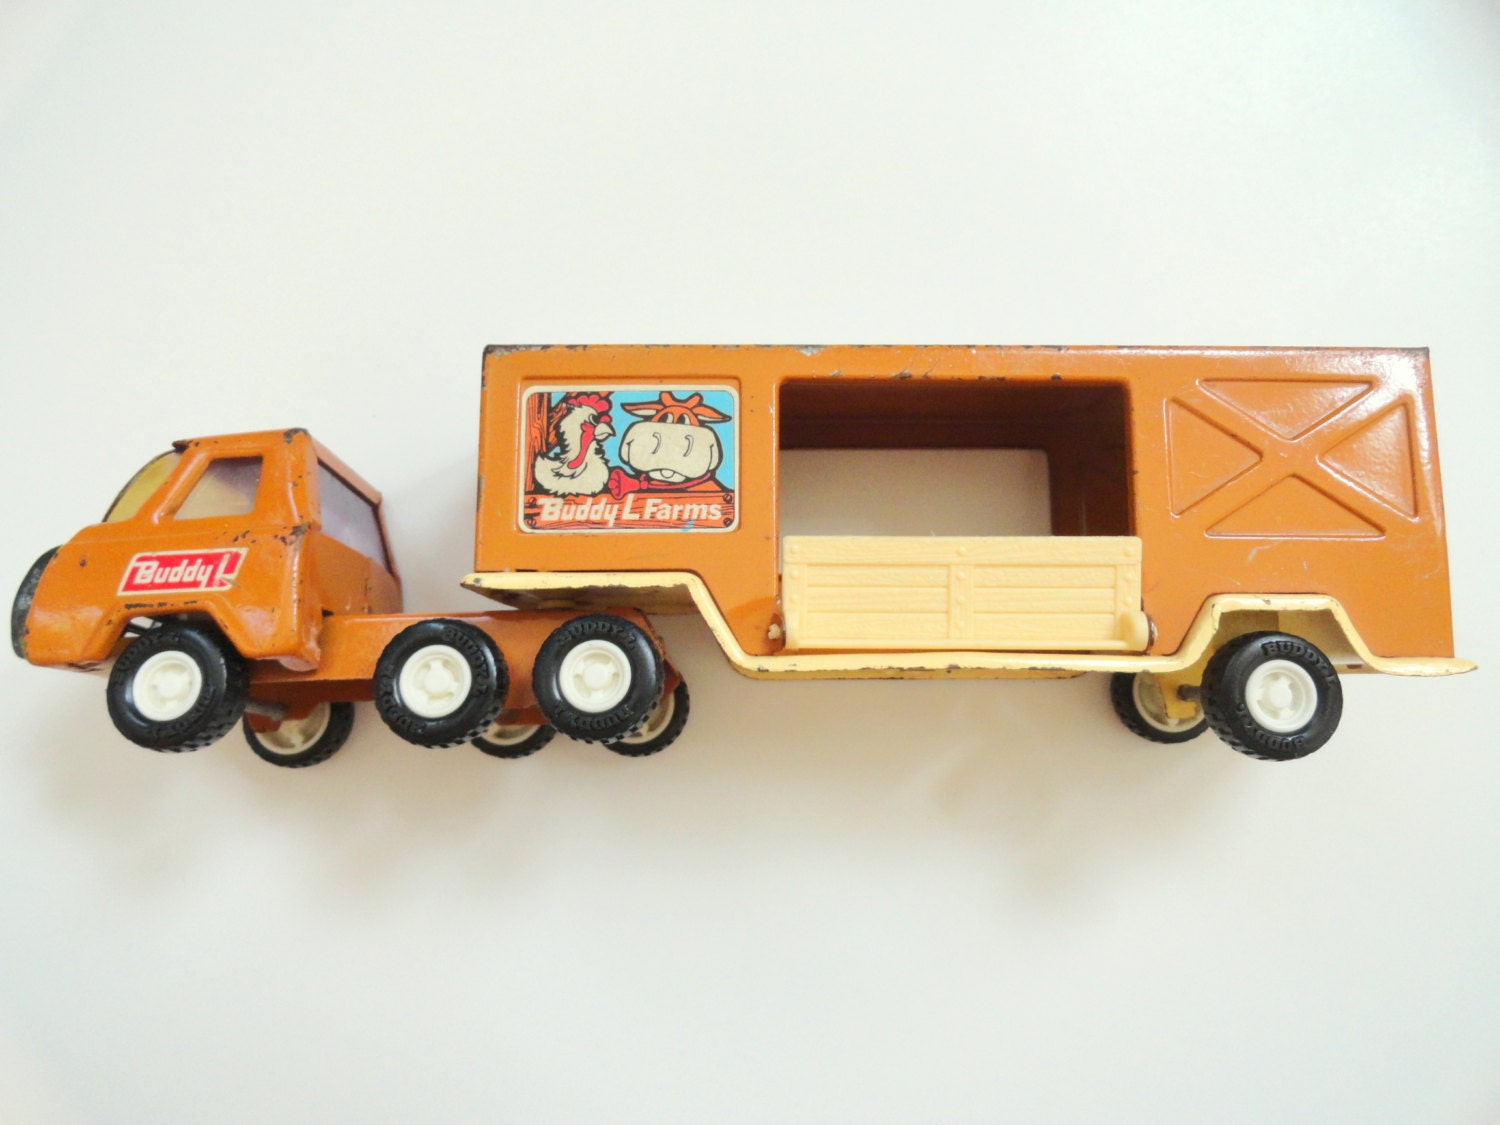 Toy Semi Trucks And Trailers : Toy semi truck and trailer buddy l farms vintage